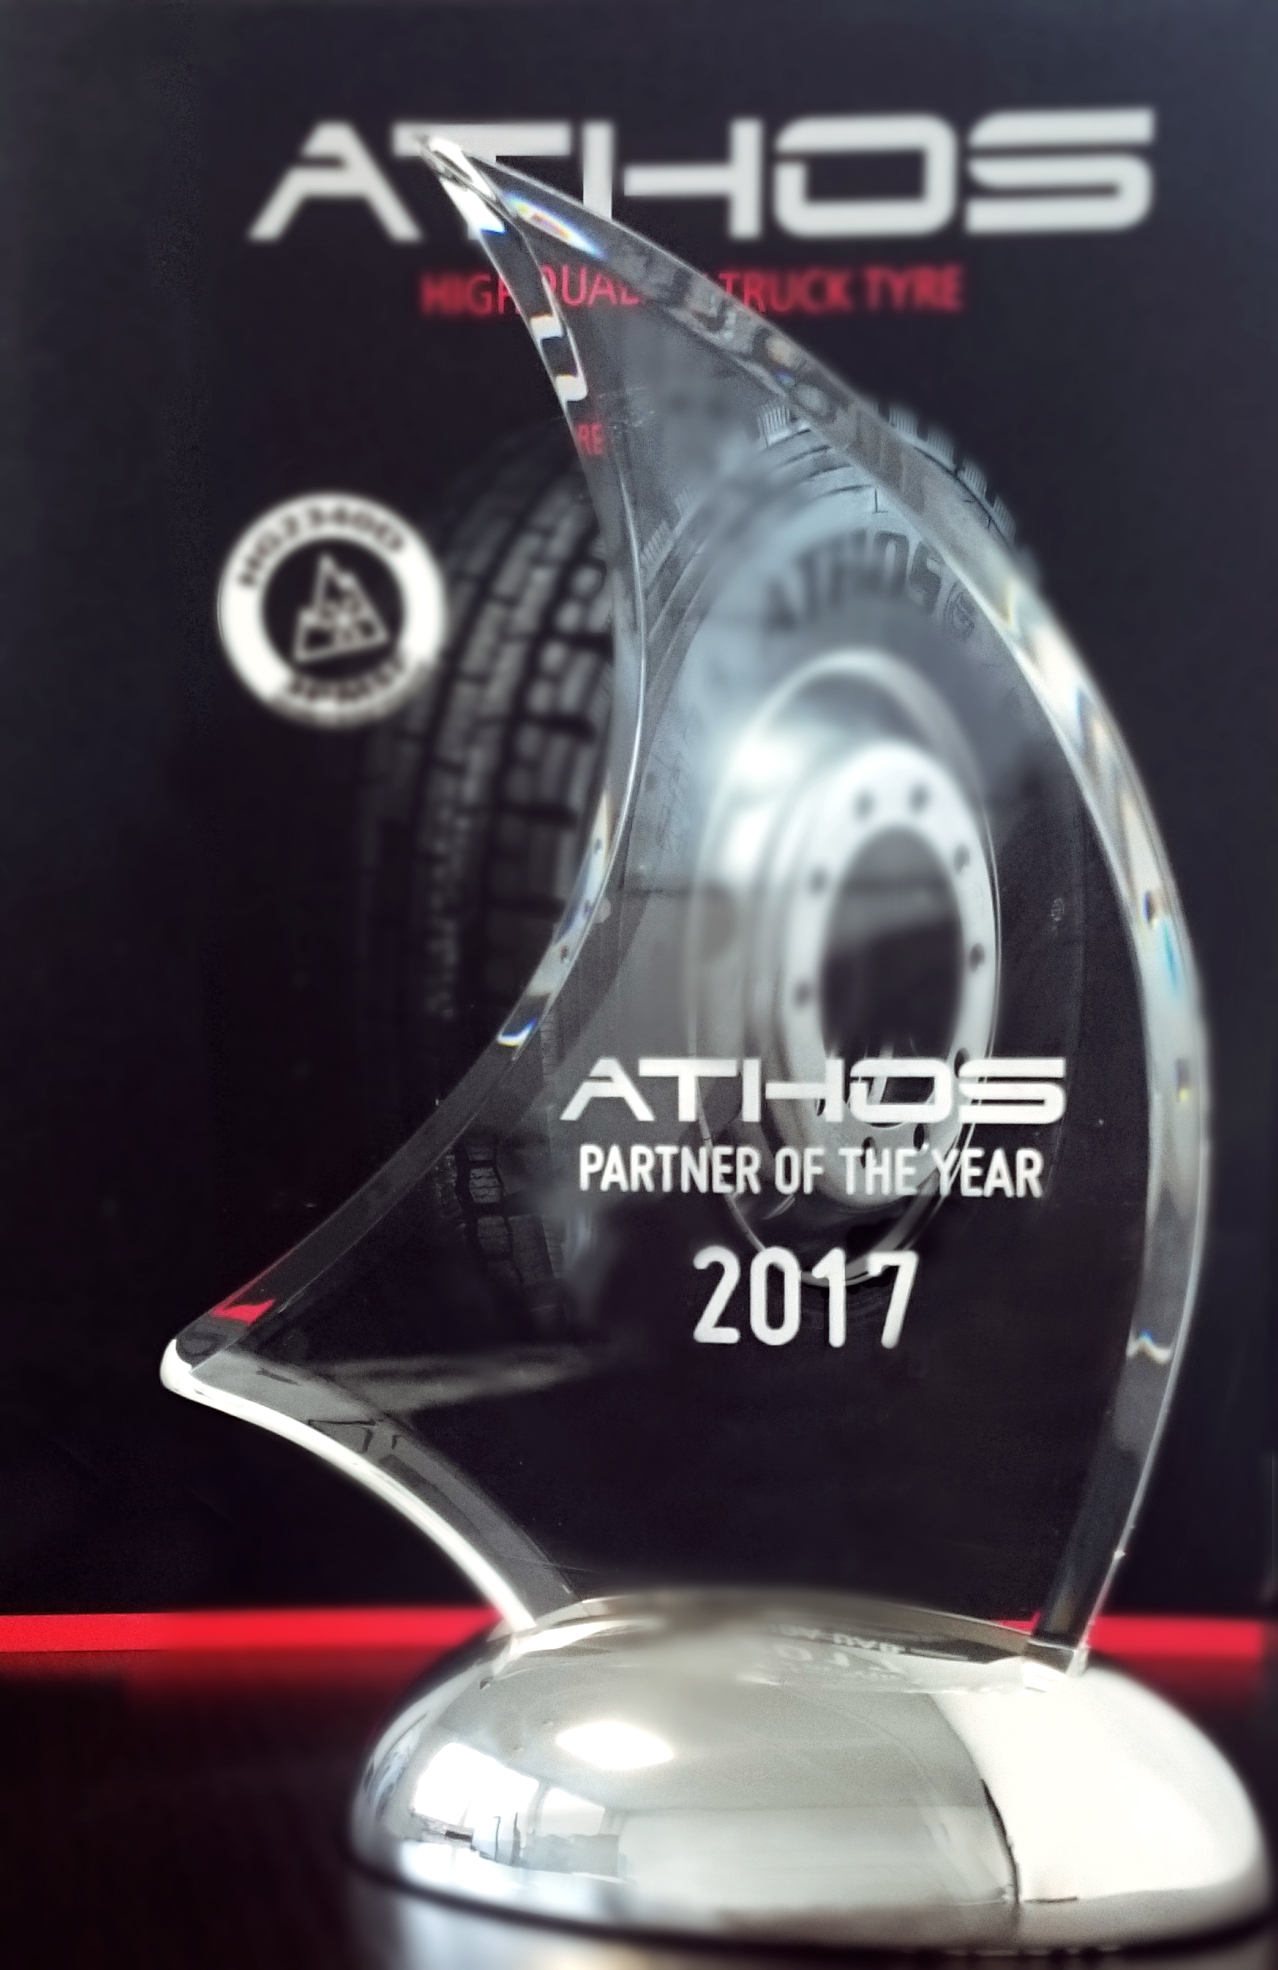 ATHOS Partner of the Year 2017